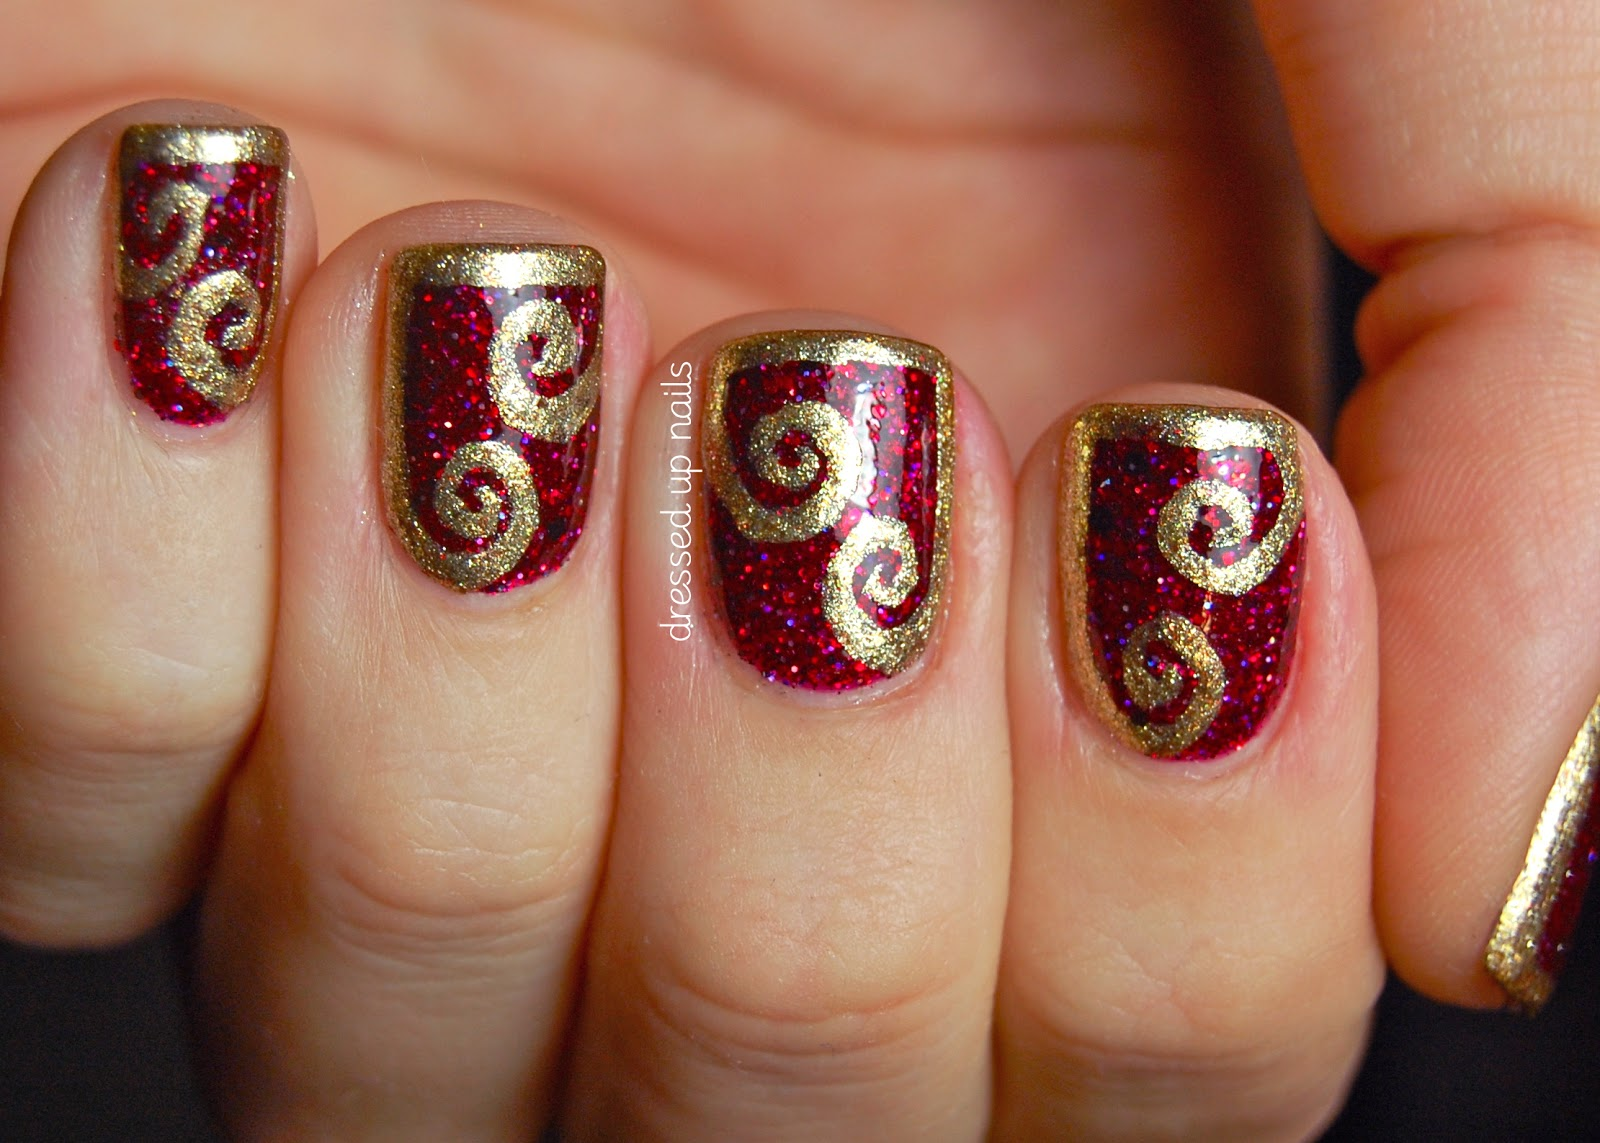 Dressed Up Nails: Shimmer Polish Karina with half-frame swirl nail art